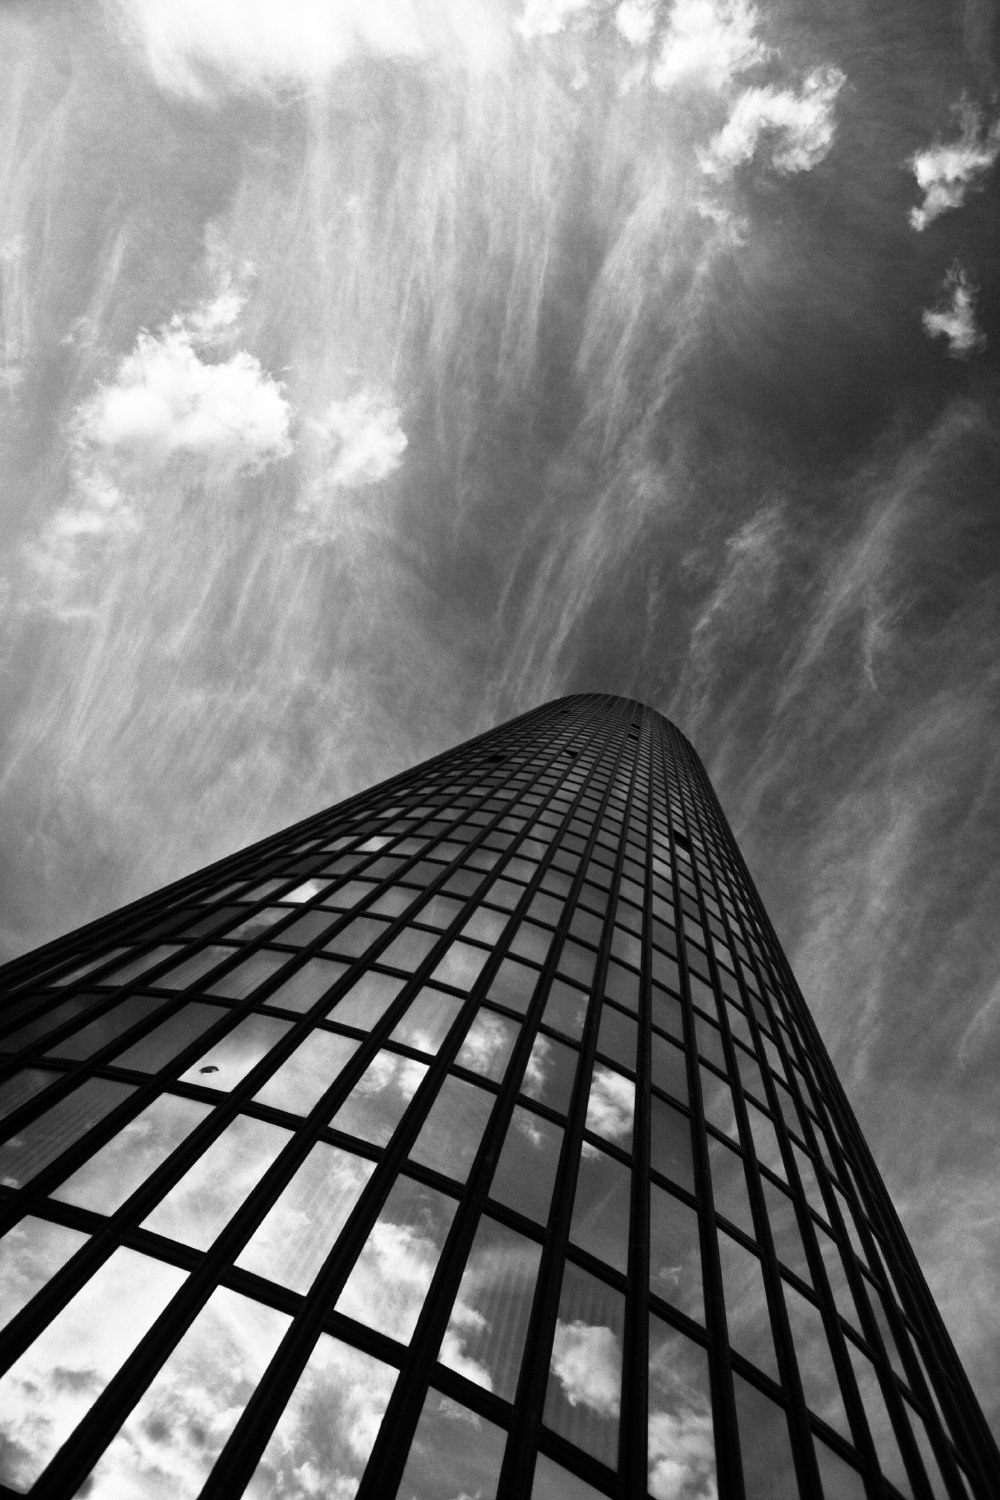 Zagreb Architecture cibona tower